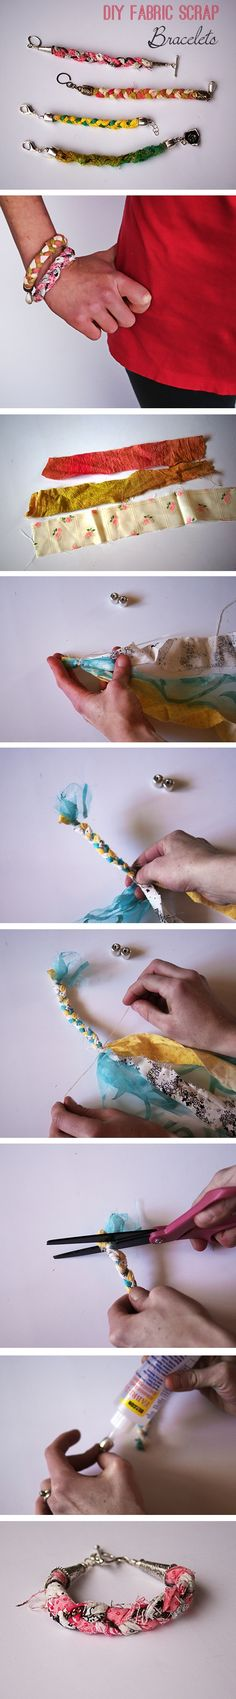 Easy Scrap Fabric Bracelet DIY